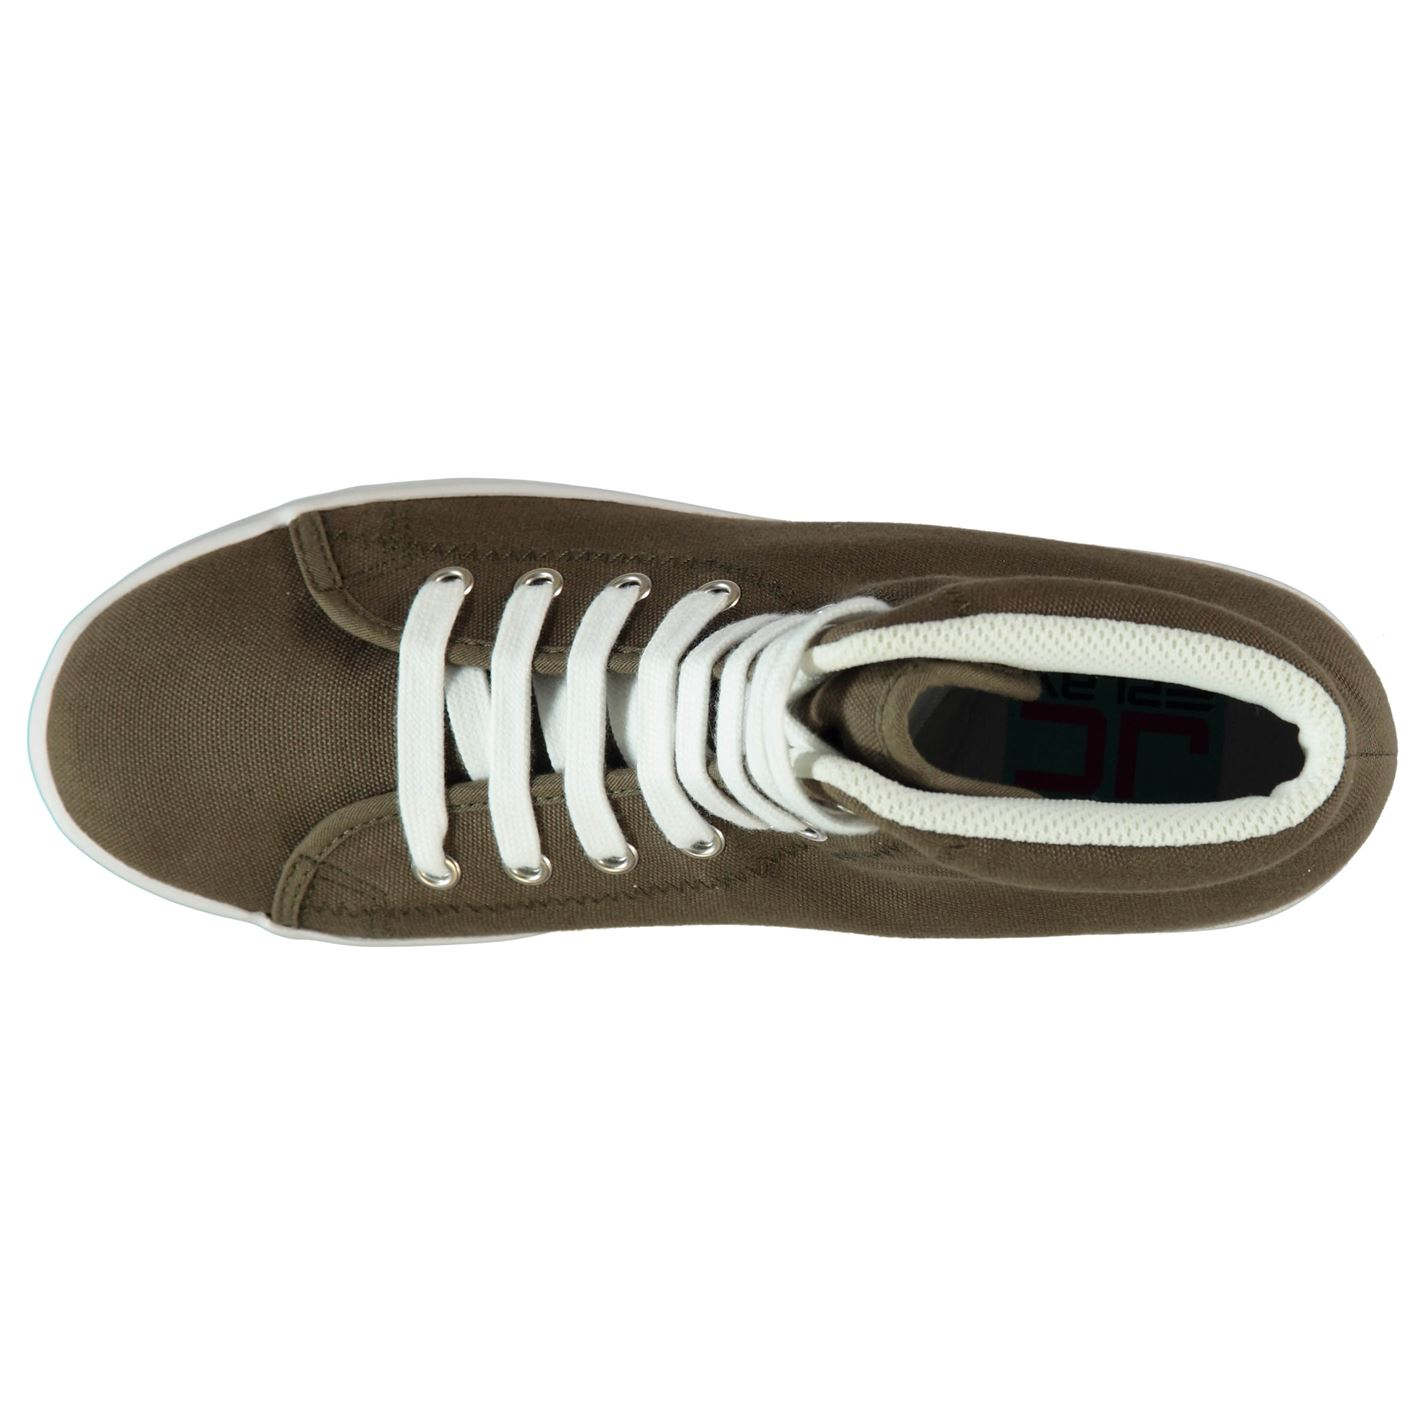 Jeffrey Campbell Play Canvas Wash Trainers Ladies Footwear Womens